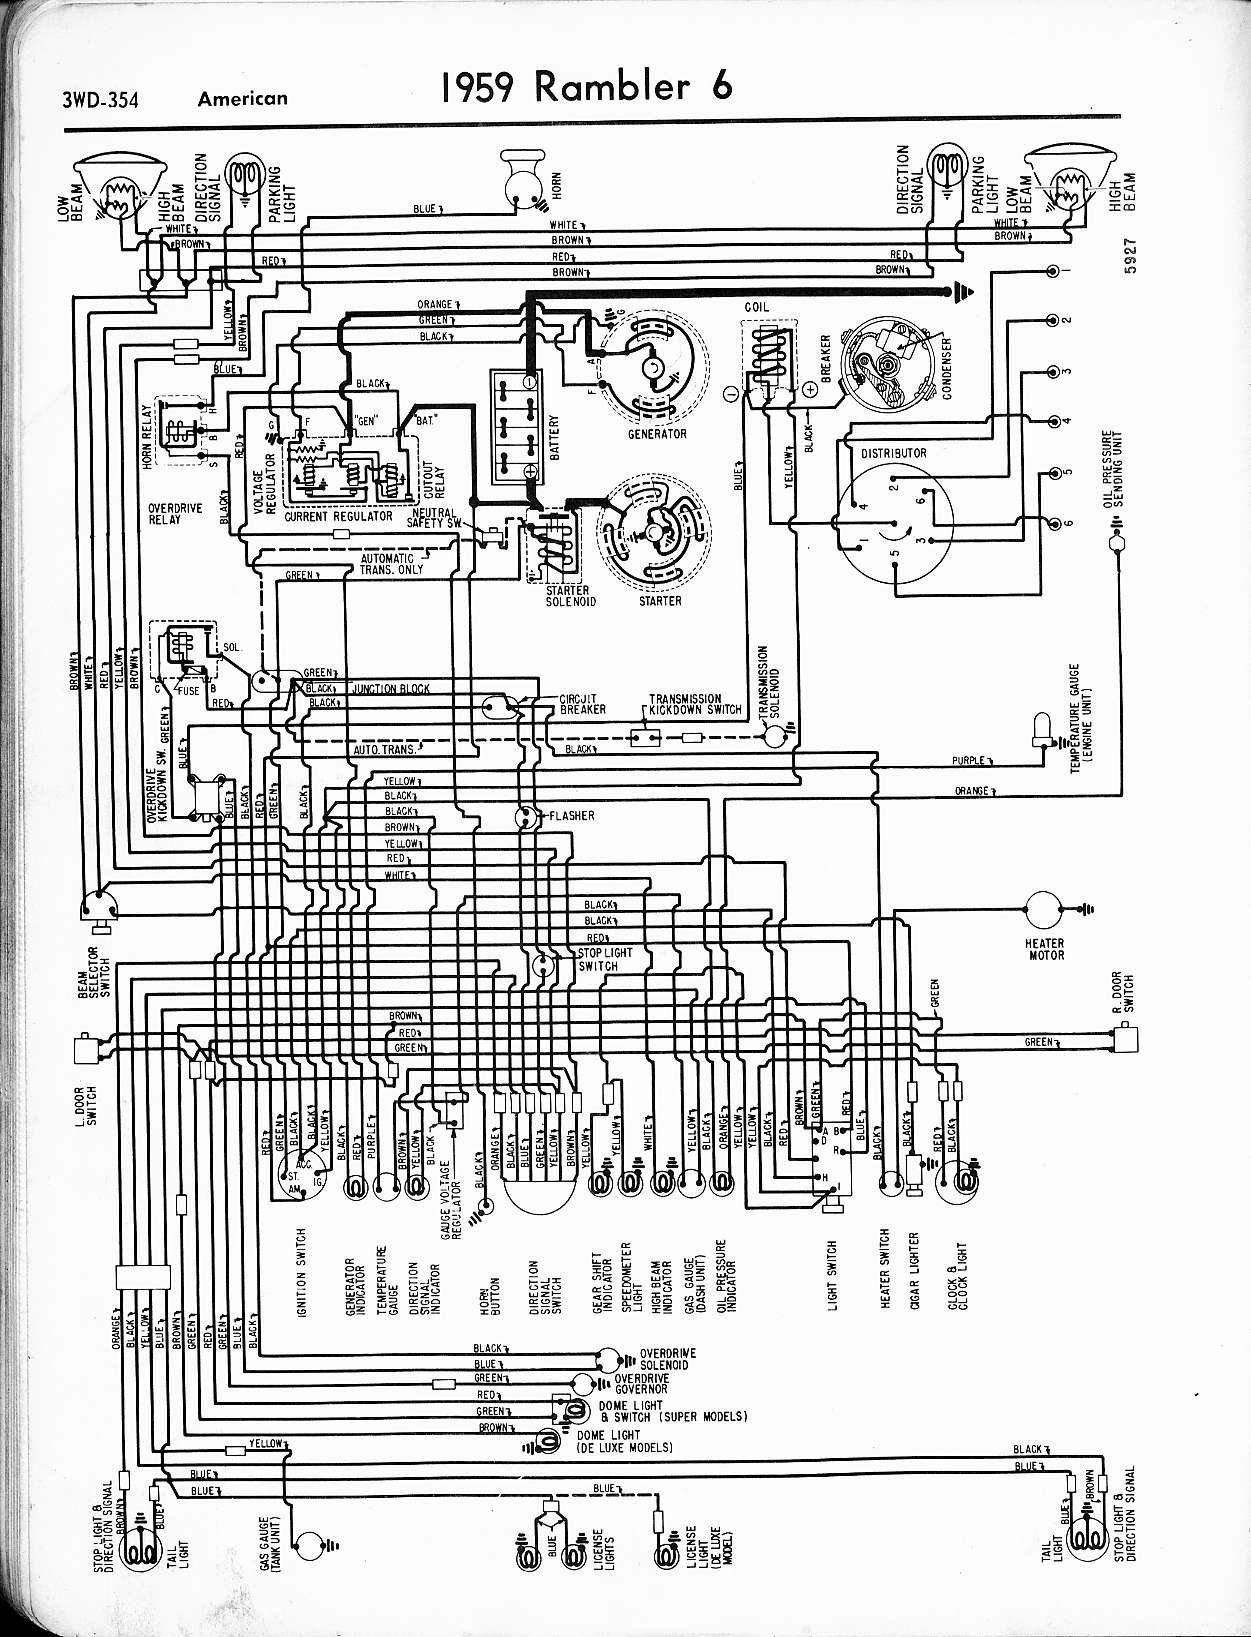 MWire5765 354 rambler wiring diagrams the old car manual project amc rebel wiring diagram at gsmportal.co